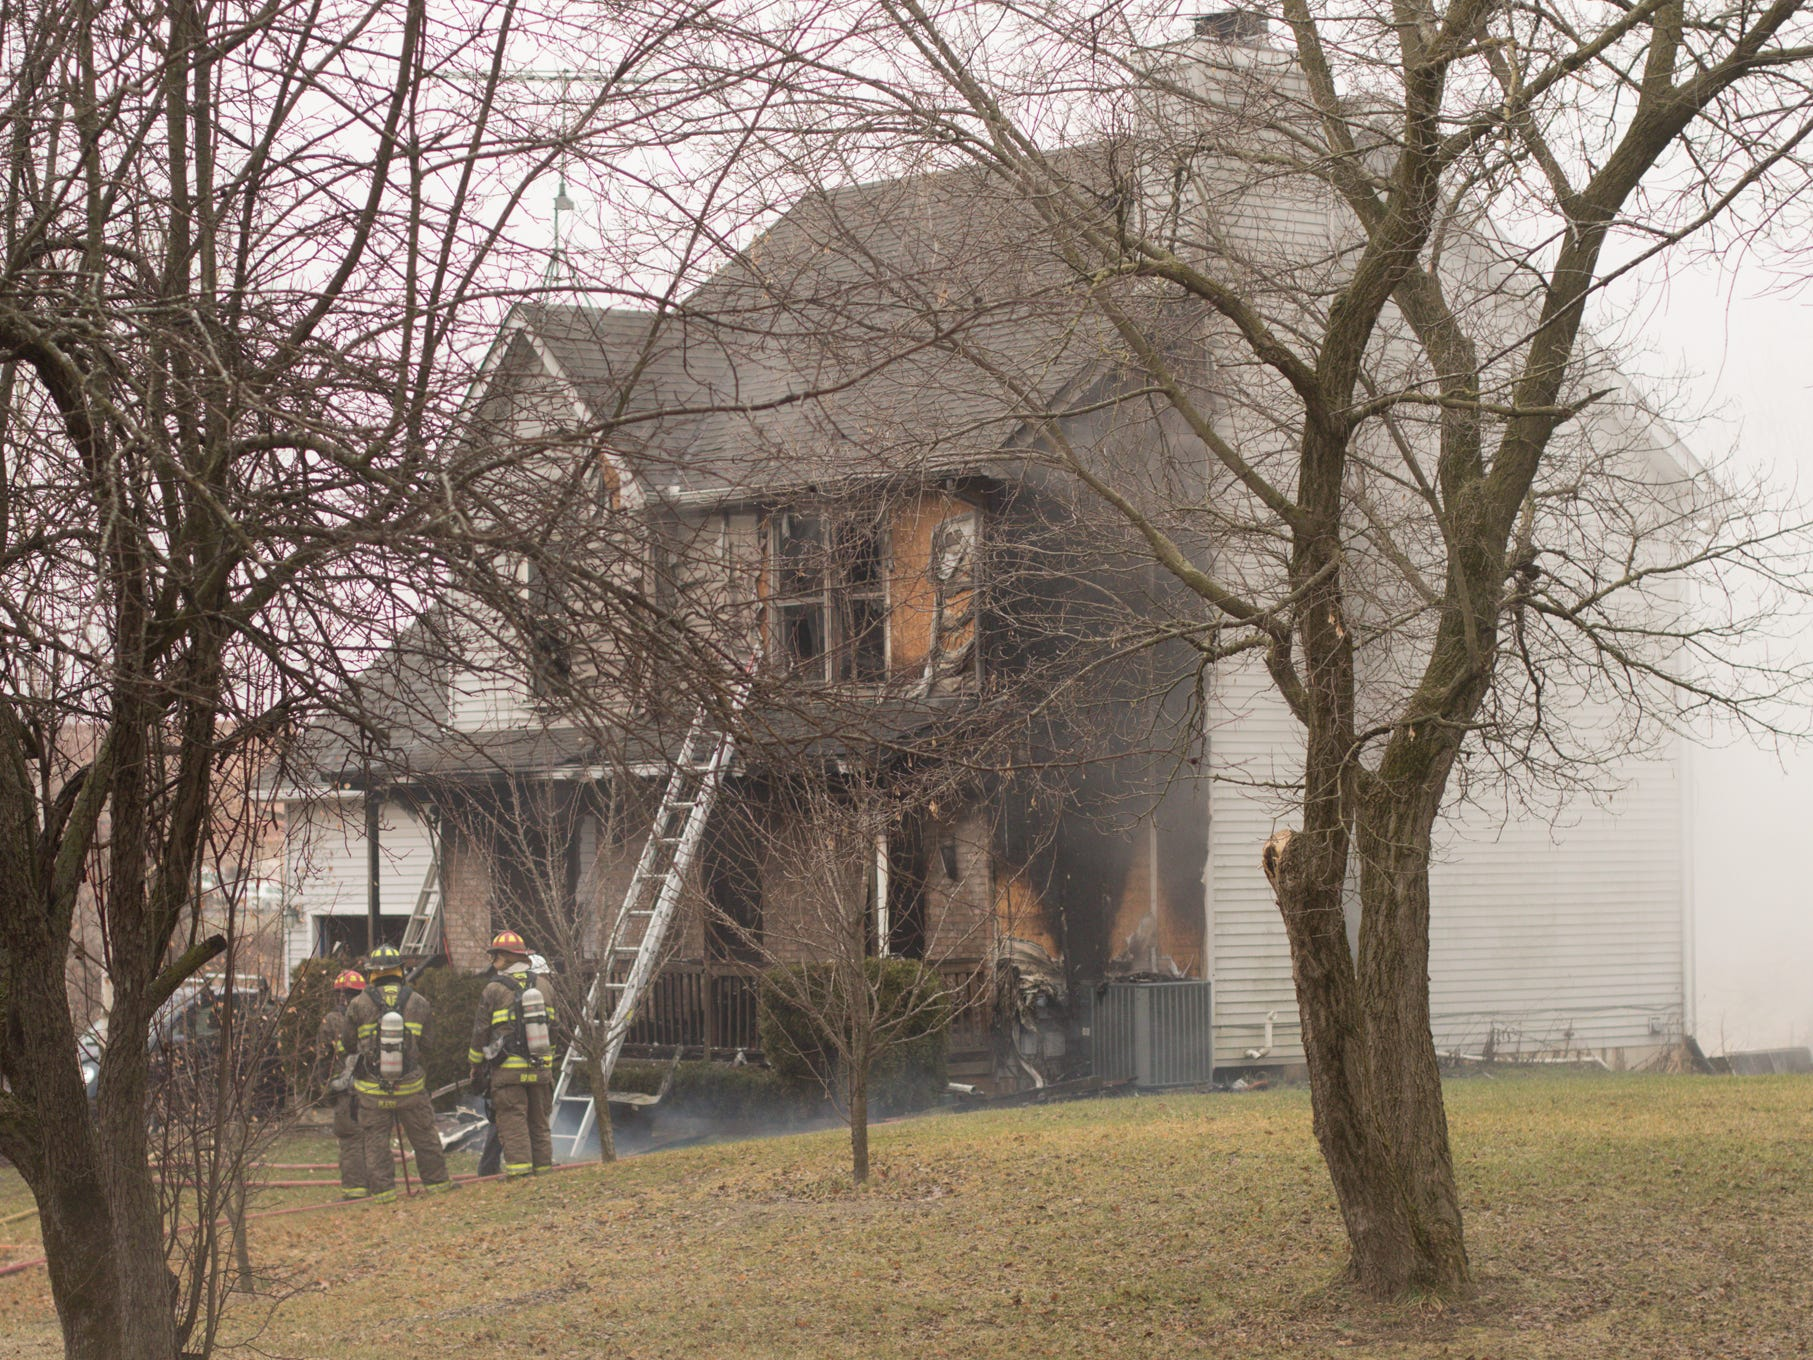 Howell Area firefighters put out hot spots in a house fire on Norton Rd. in Marion Township Wednesday, Jan. 2, 2019.